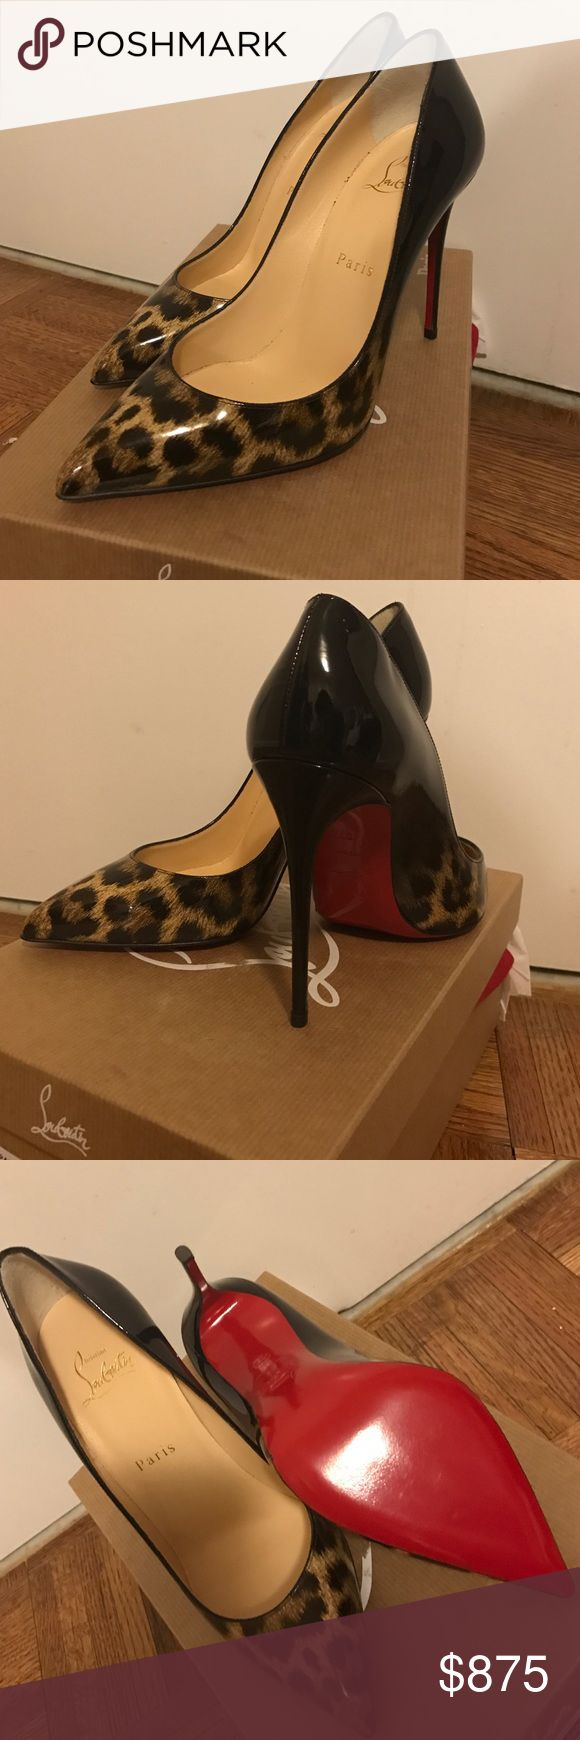 NIB Christian Louboutin Pigalle Follies Leopard Christian Louboutin Pigalle Follies leopard sold out everywhere! Brand New In Box. Never worn. 100mm. Includes box, heel caps, and dust bag. Price is firm! Christian Louboutin Shoes Heels